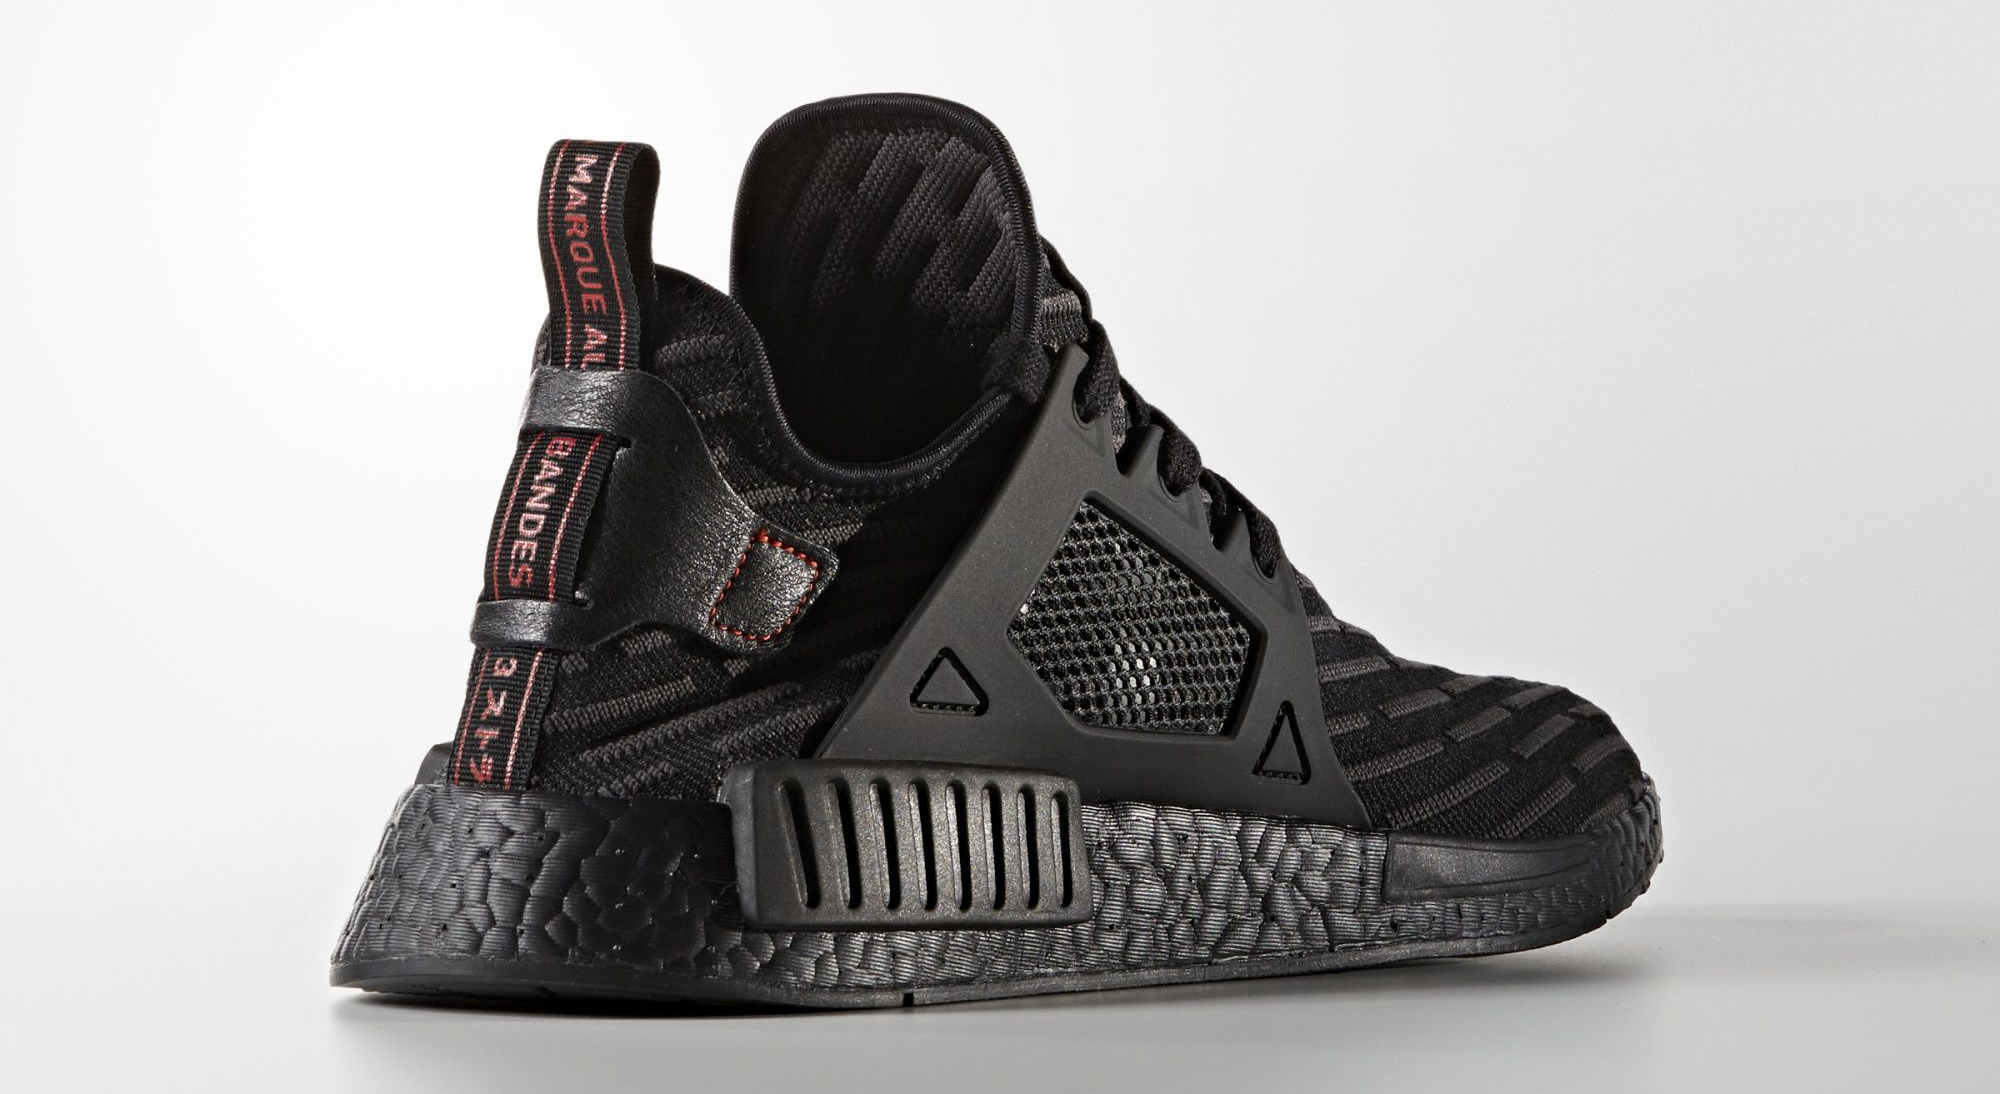 adidas nmd xr1 pk striped triple black aio bot releases. Black Bedroom Furniture Sets. Home Design Ideas